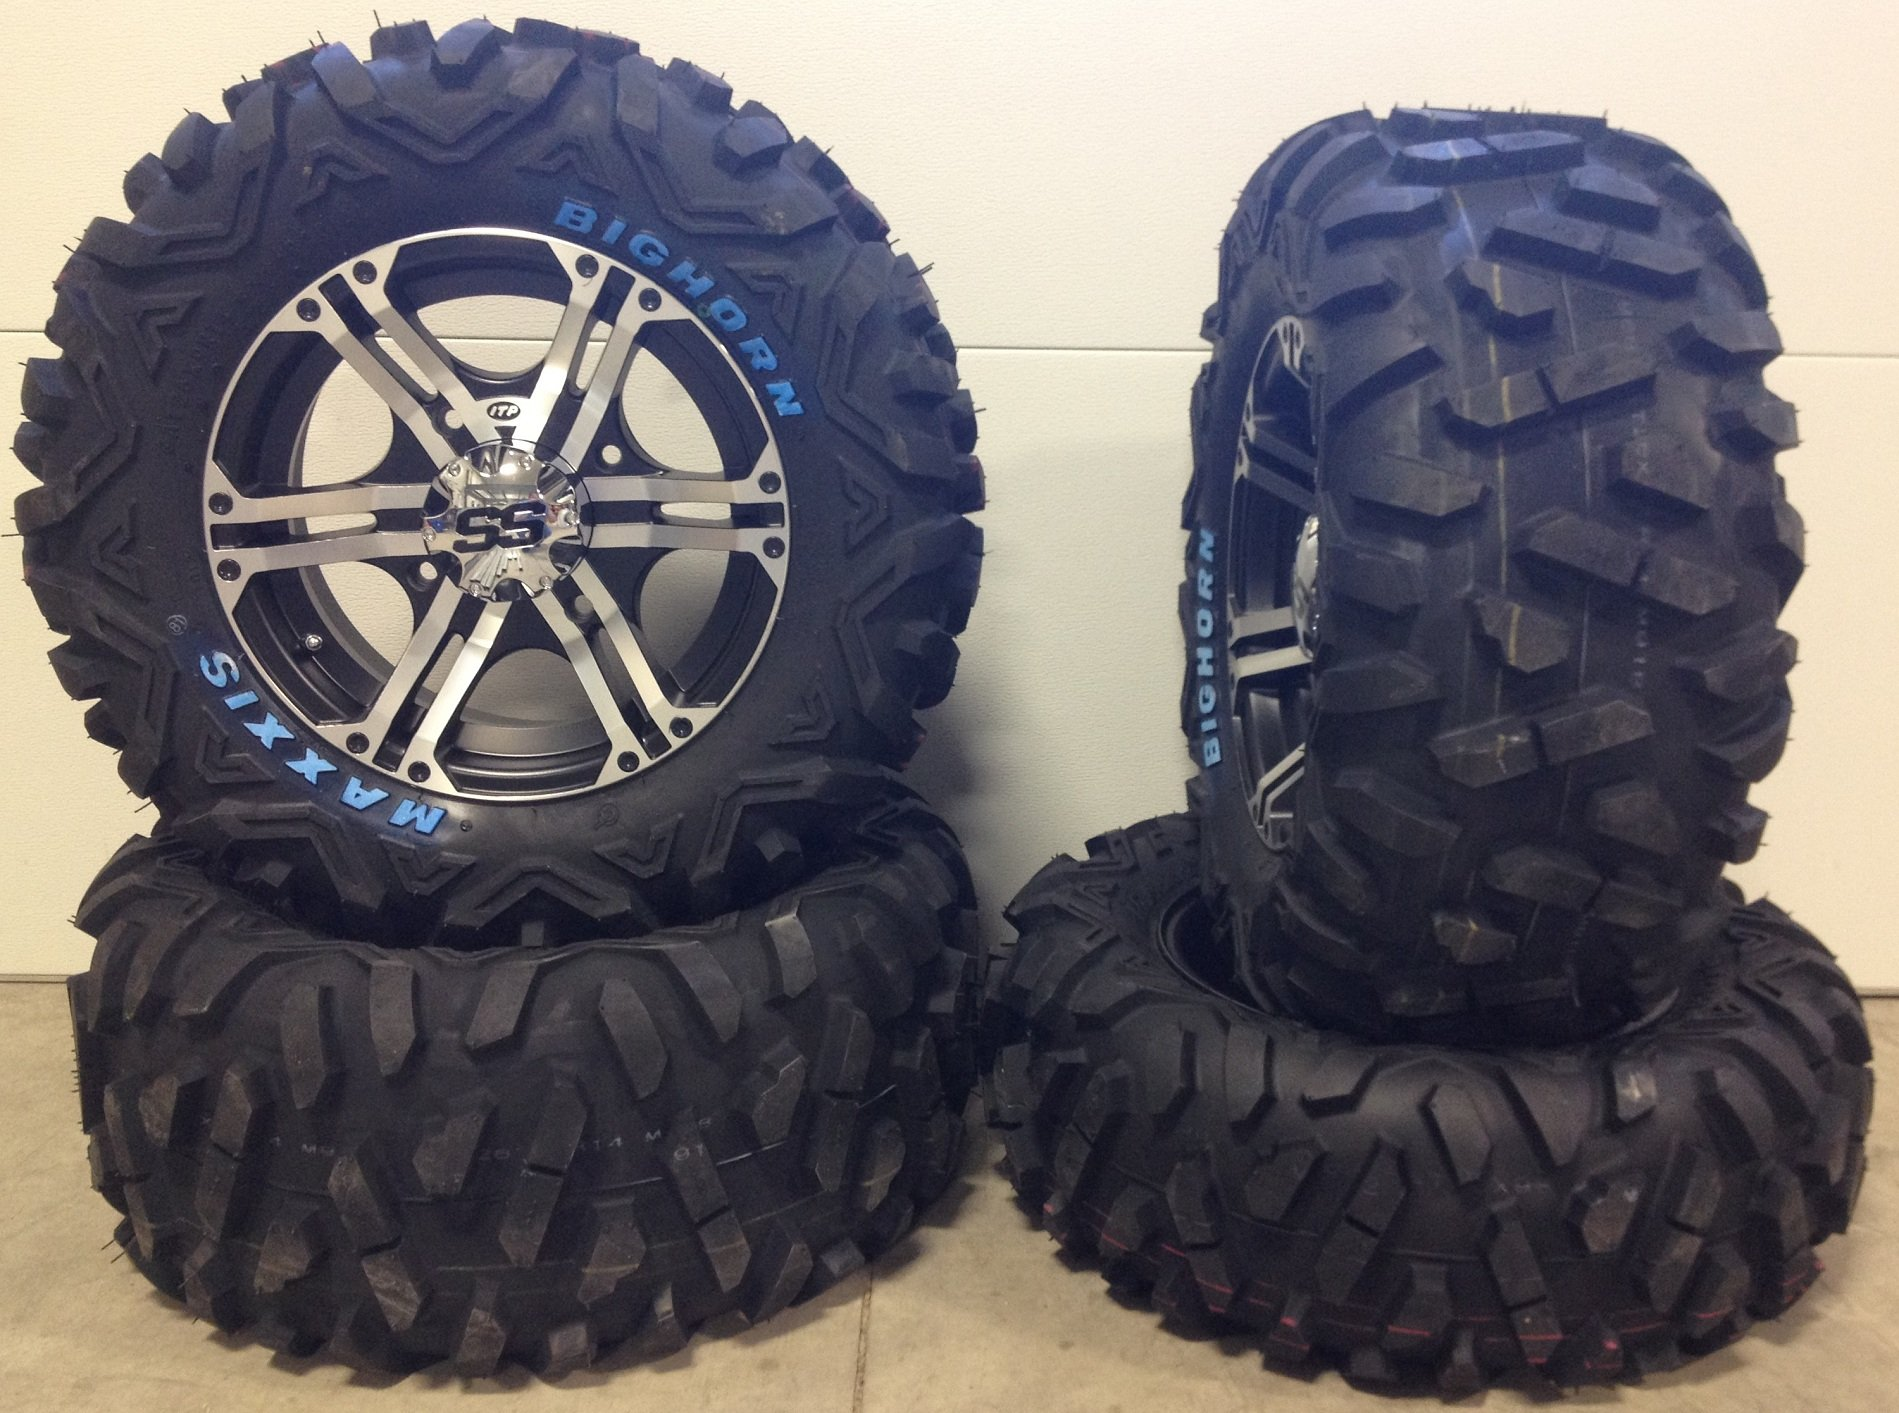 Bundle - 9 Items: ITP SS212 14'' Wheels Machined 26'' BigHorn Tires [4x156 Bolt Pattern 12mmx1.5 Lug Kit]